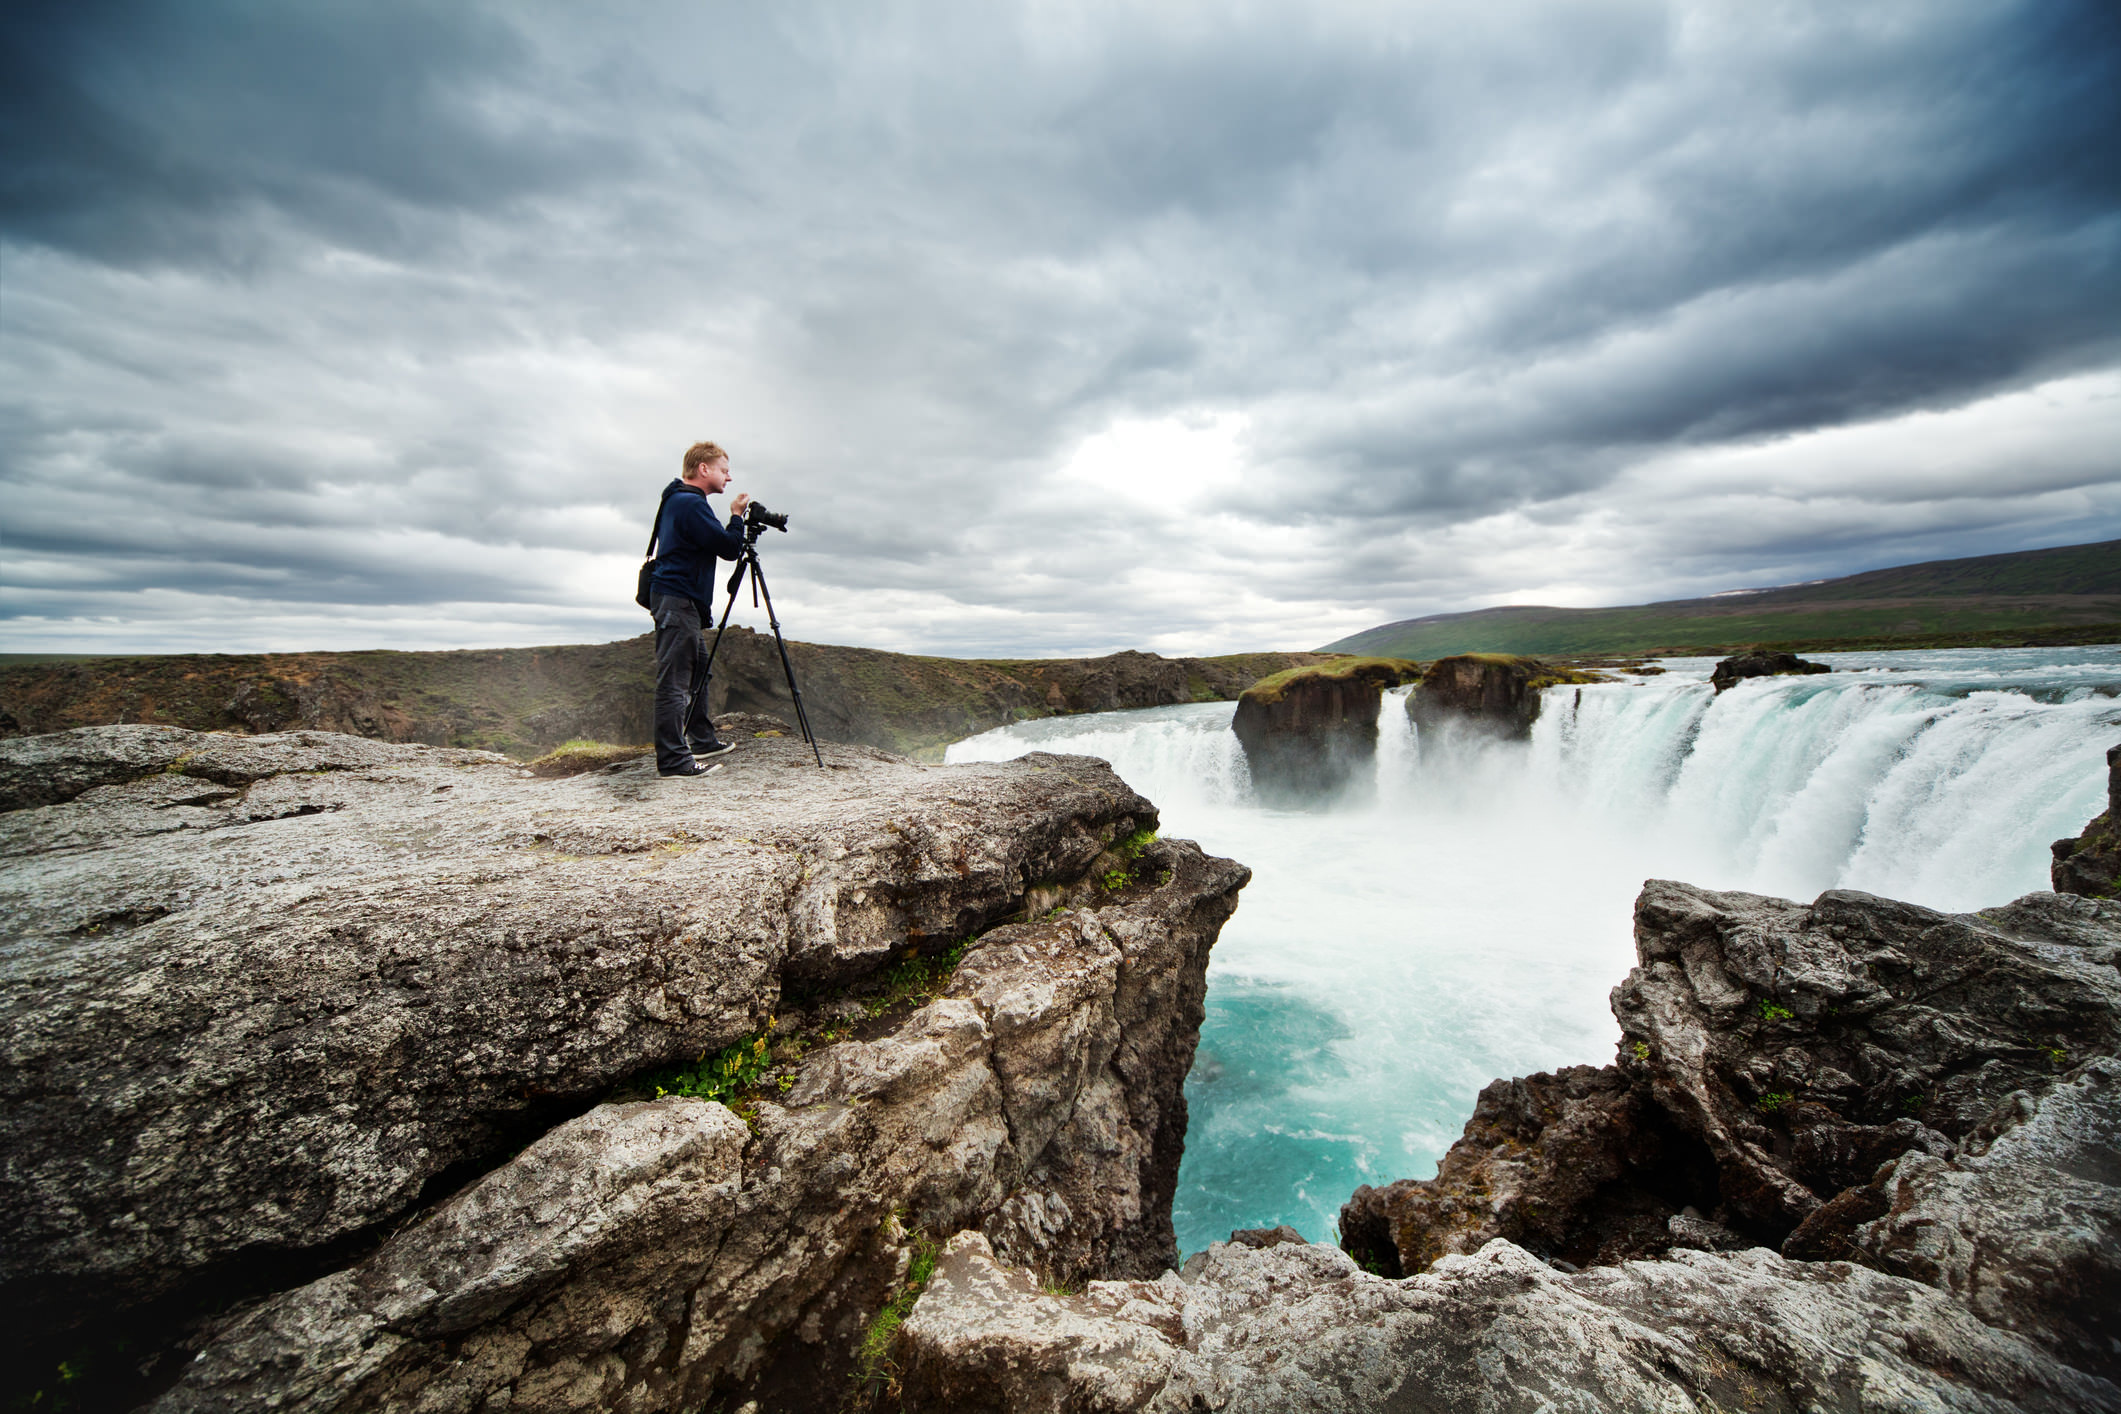 5 (More) Things I Wish I Knew When I Started Photography